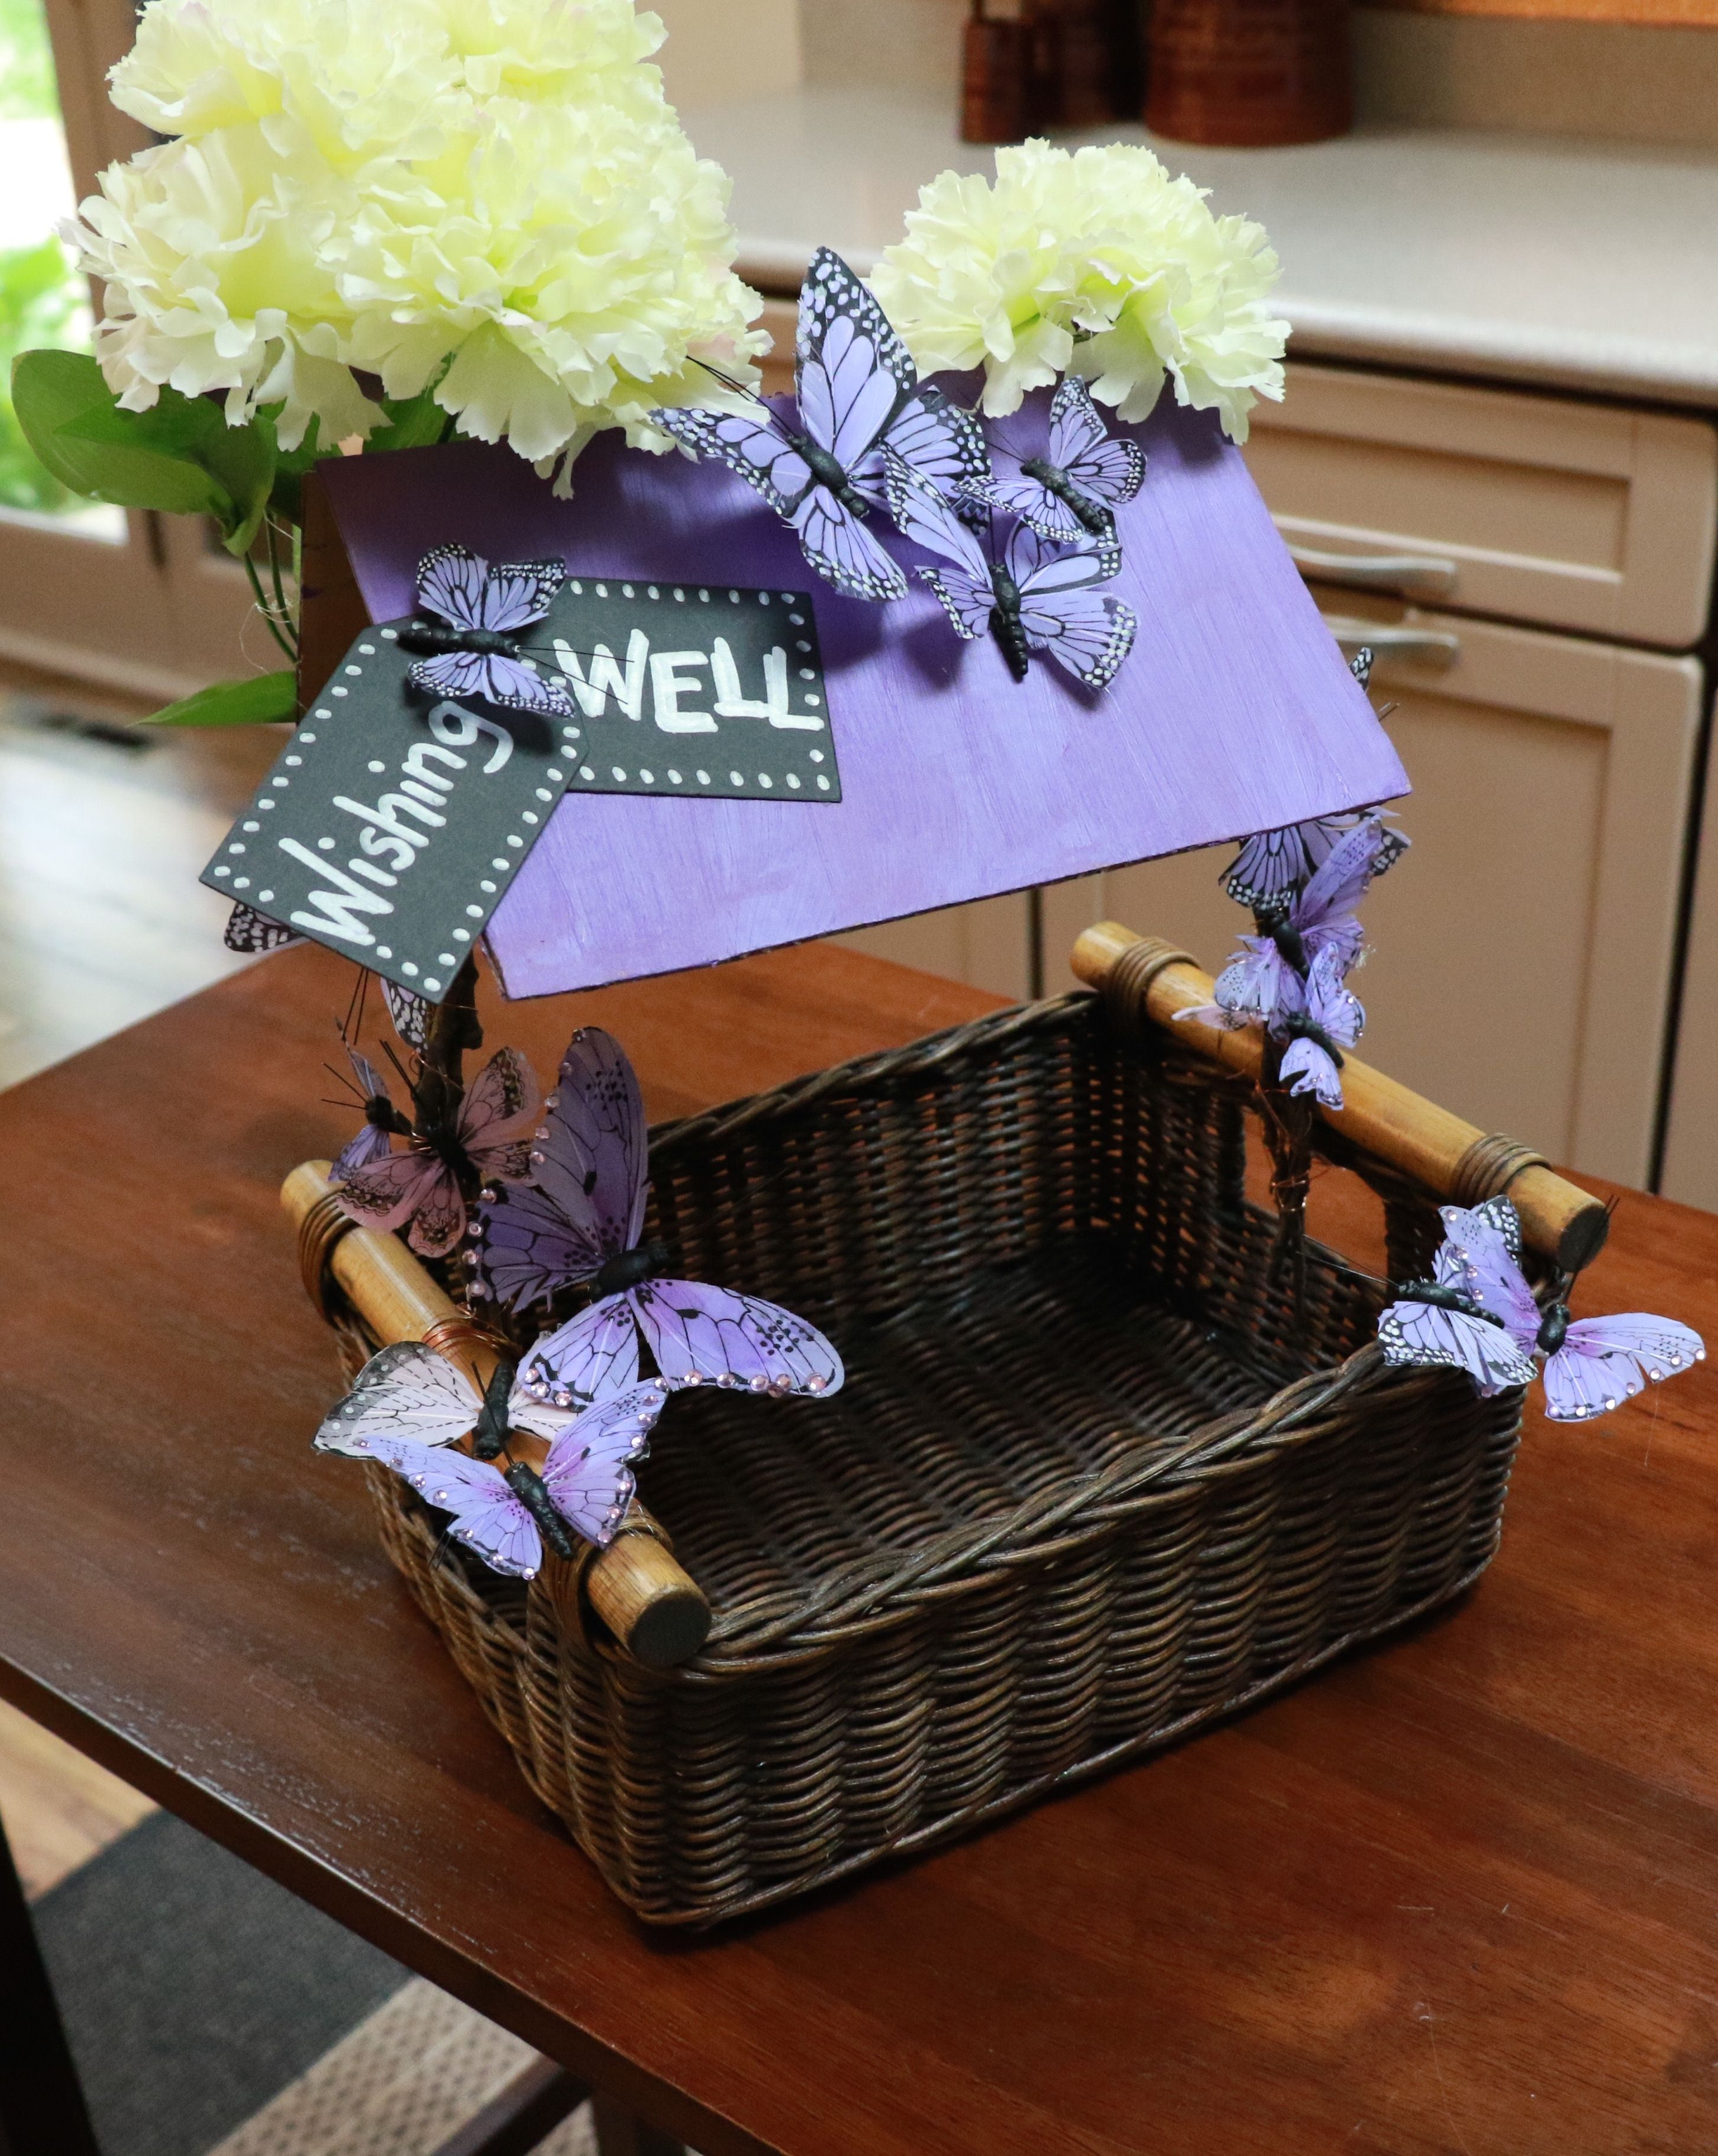 How To Make Your Own Beautiful Wishing Well Basket For A Bridal